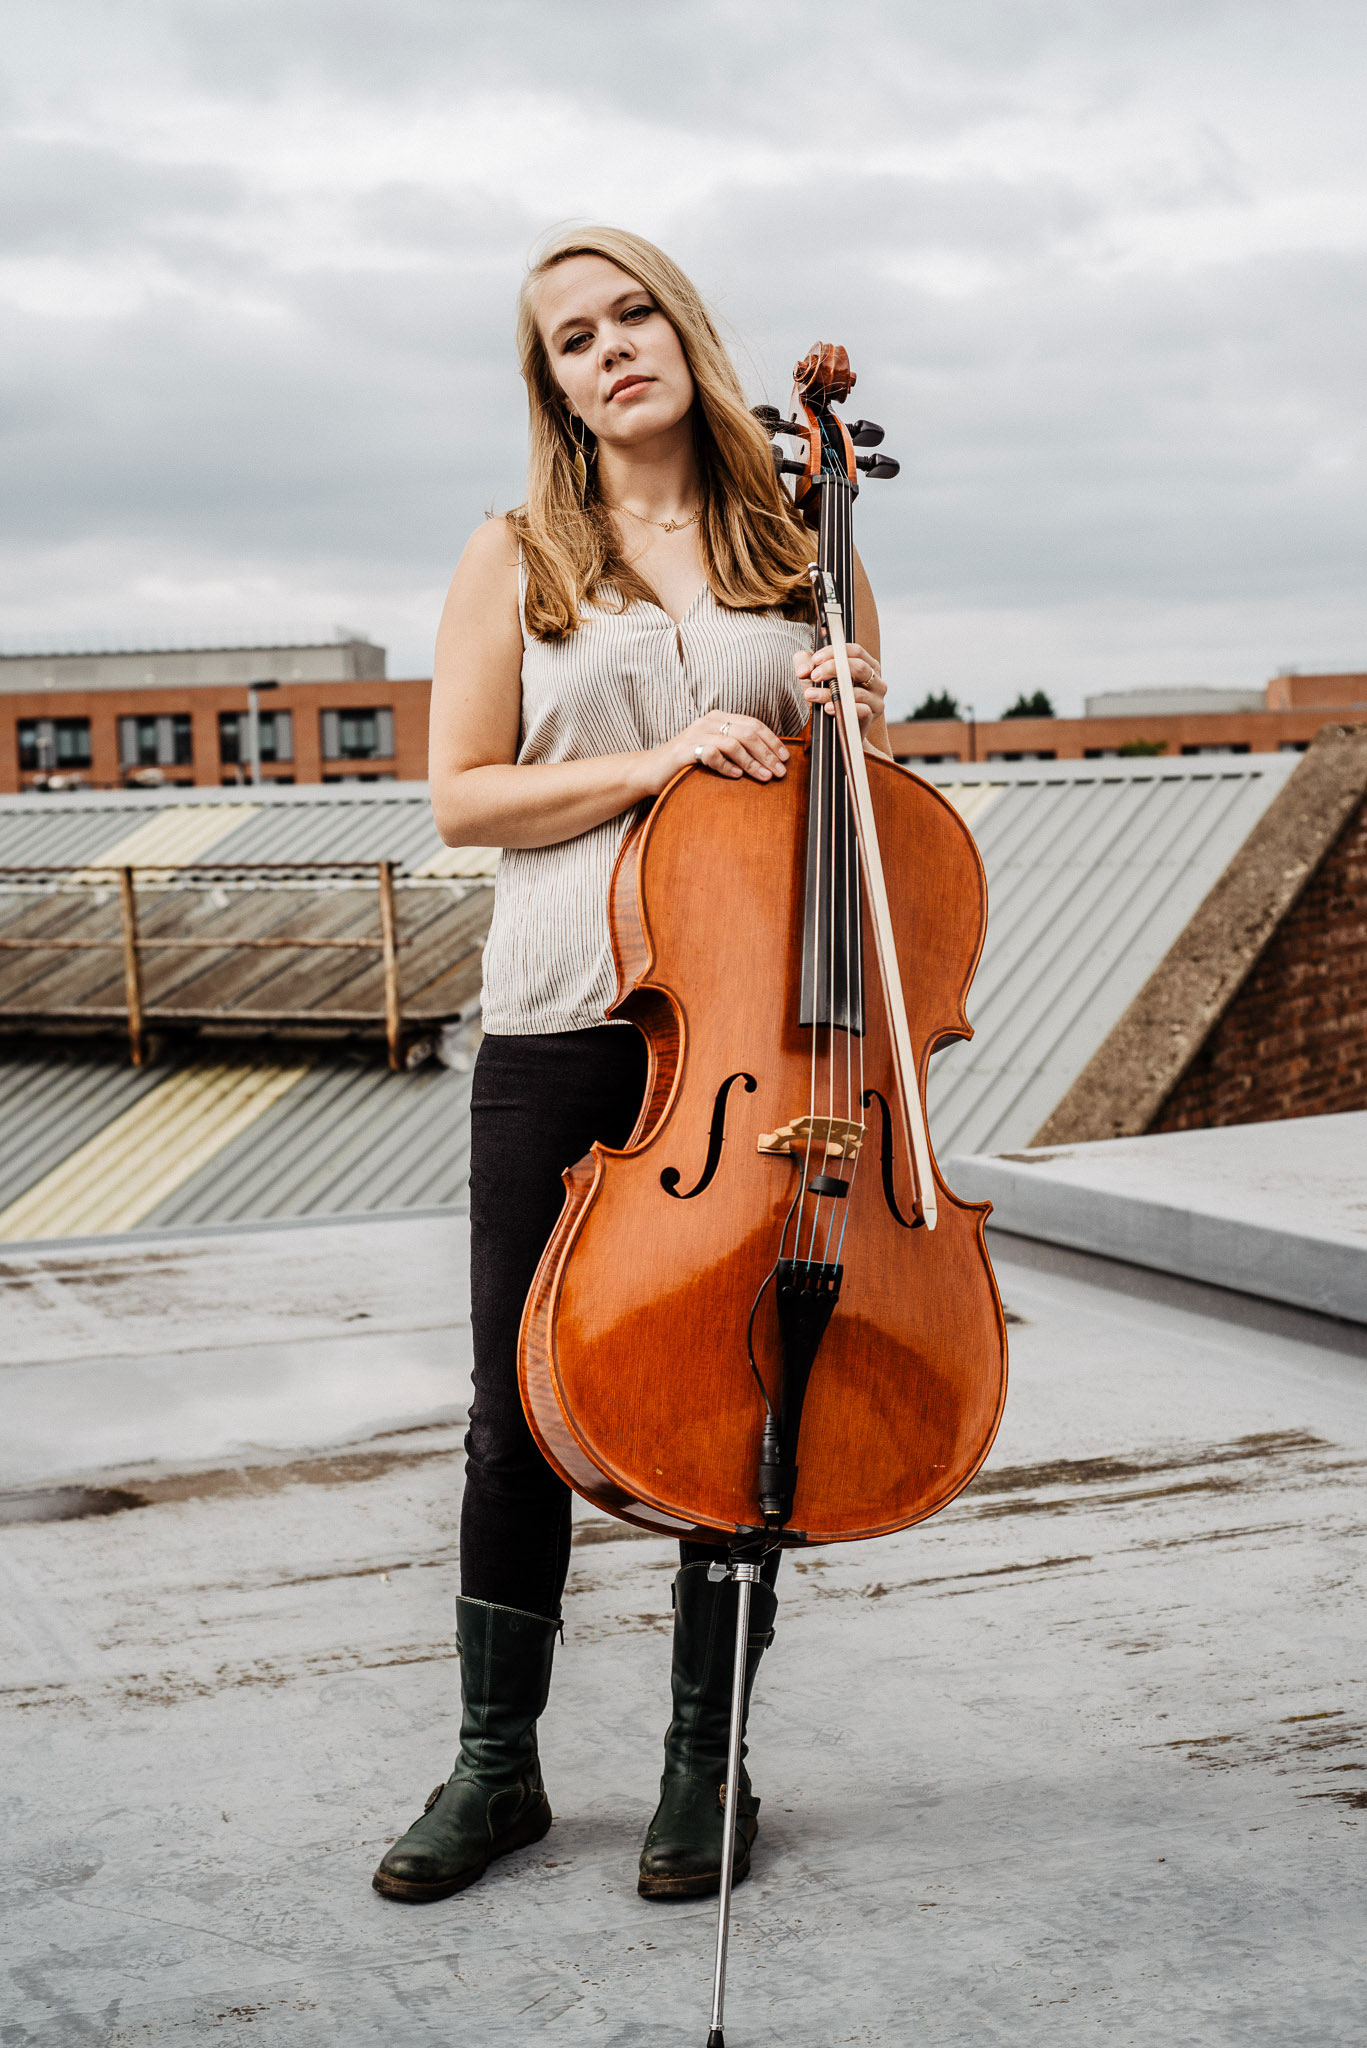 Sarah Smout with cello on rooftop (colour)